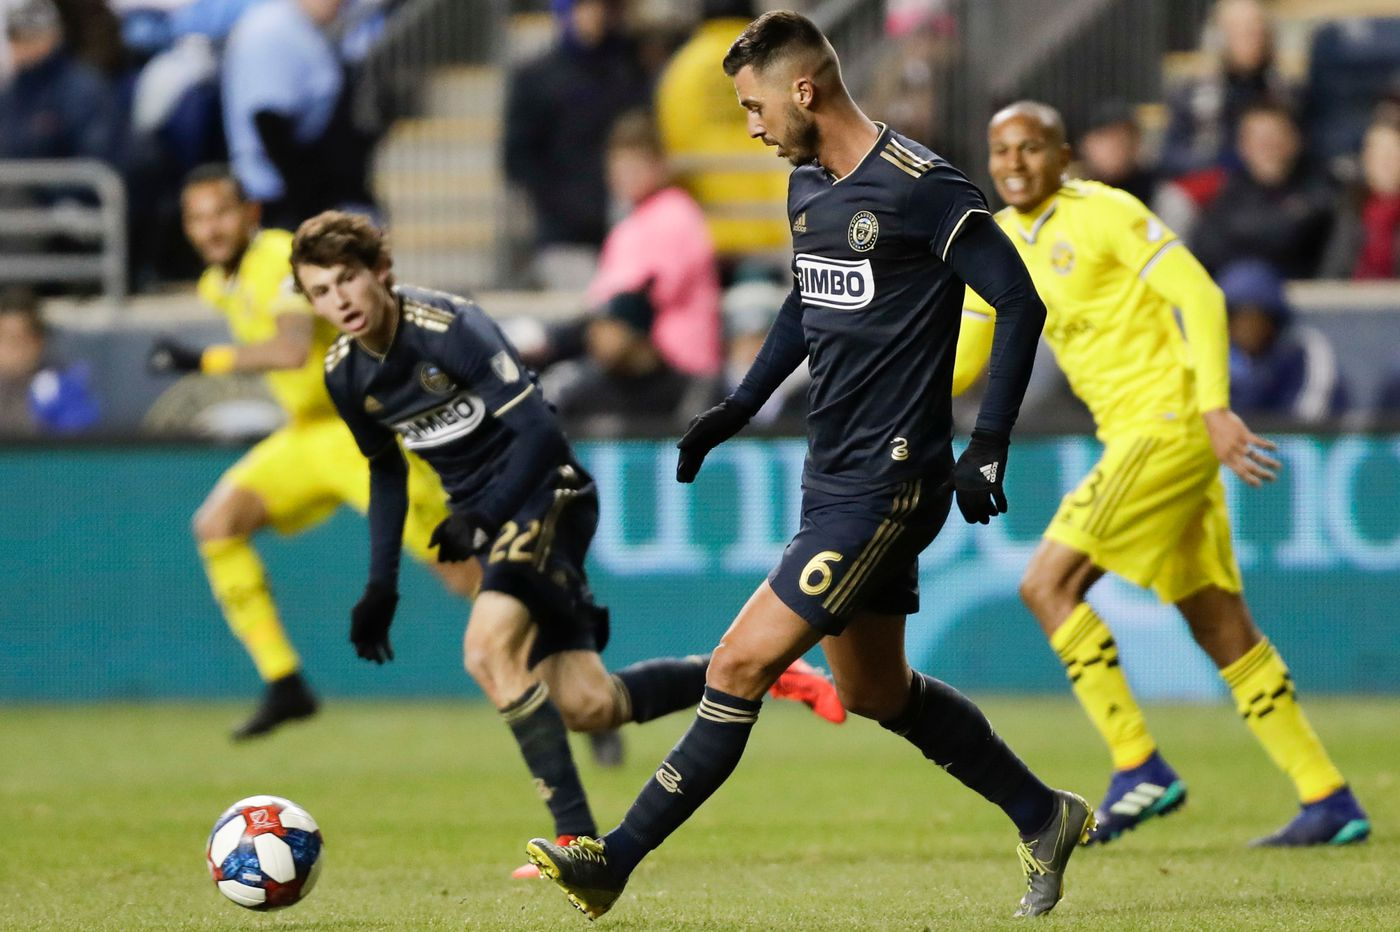 Union's 2020 schedule has 7 games on national TV, including first visit to Inter Miami